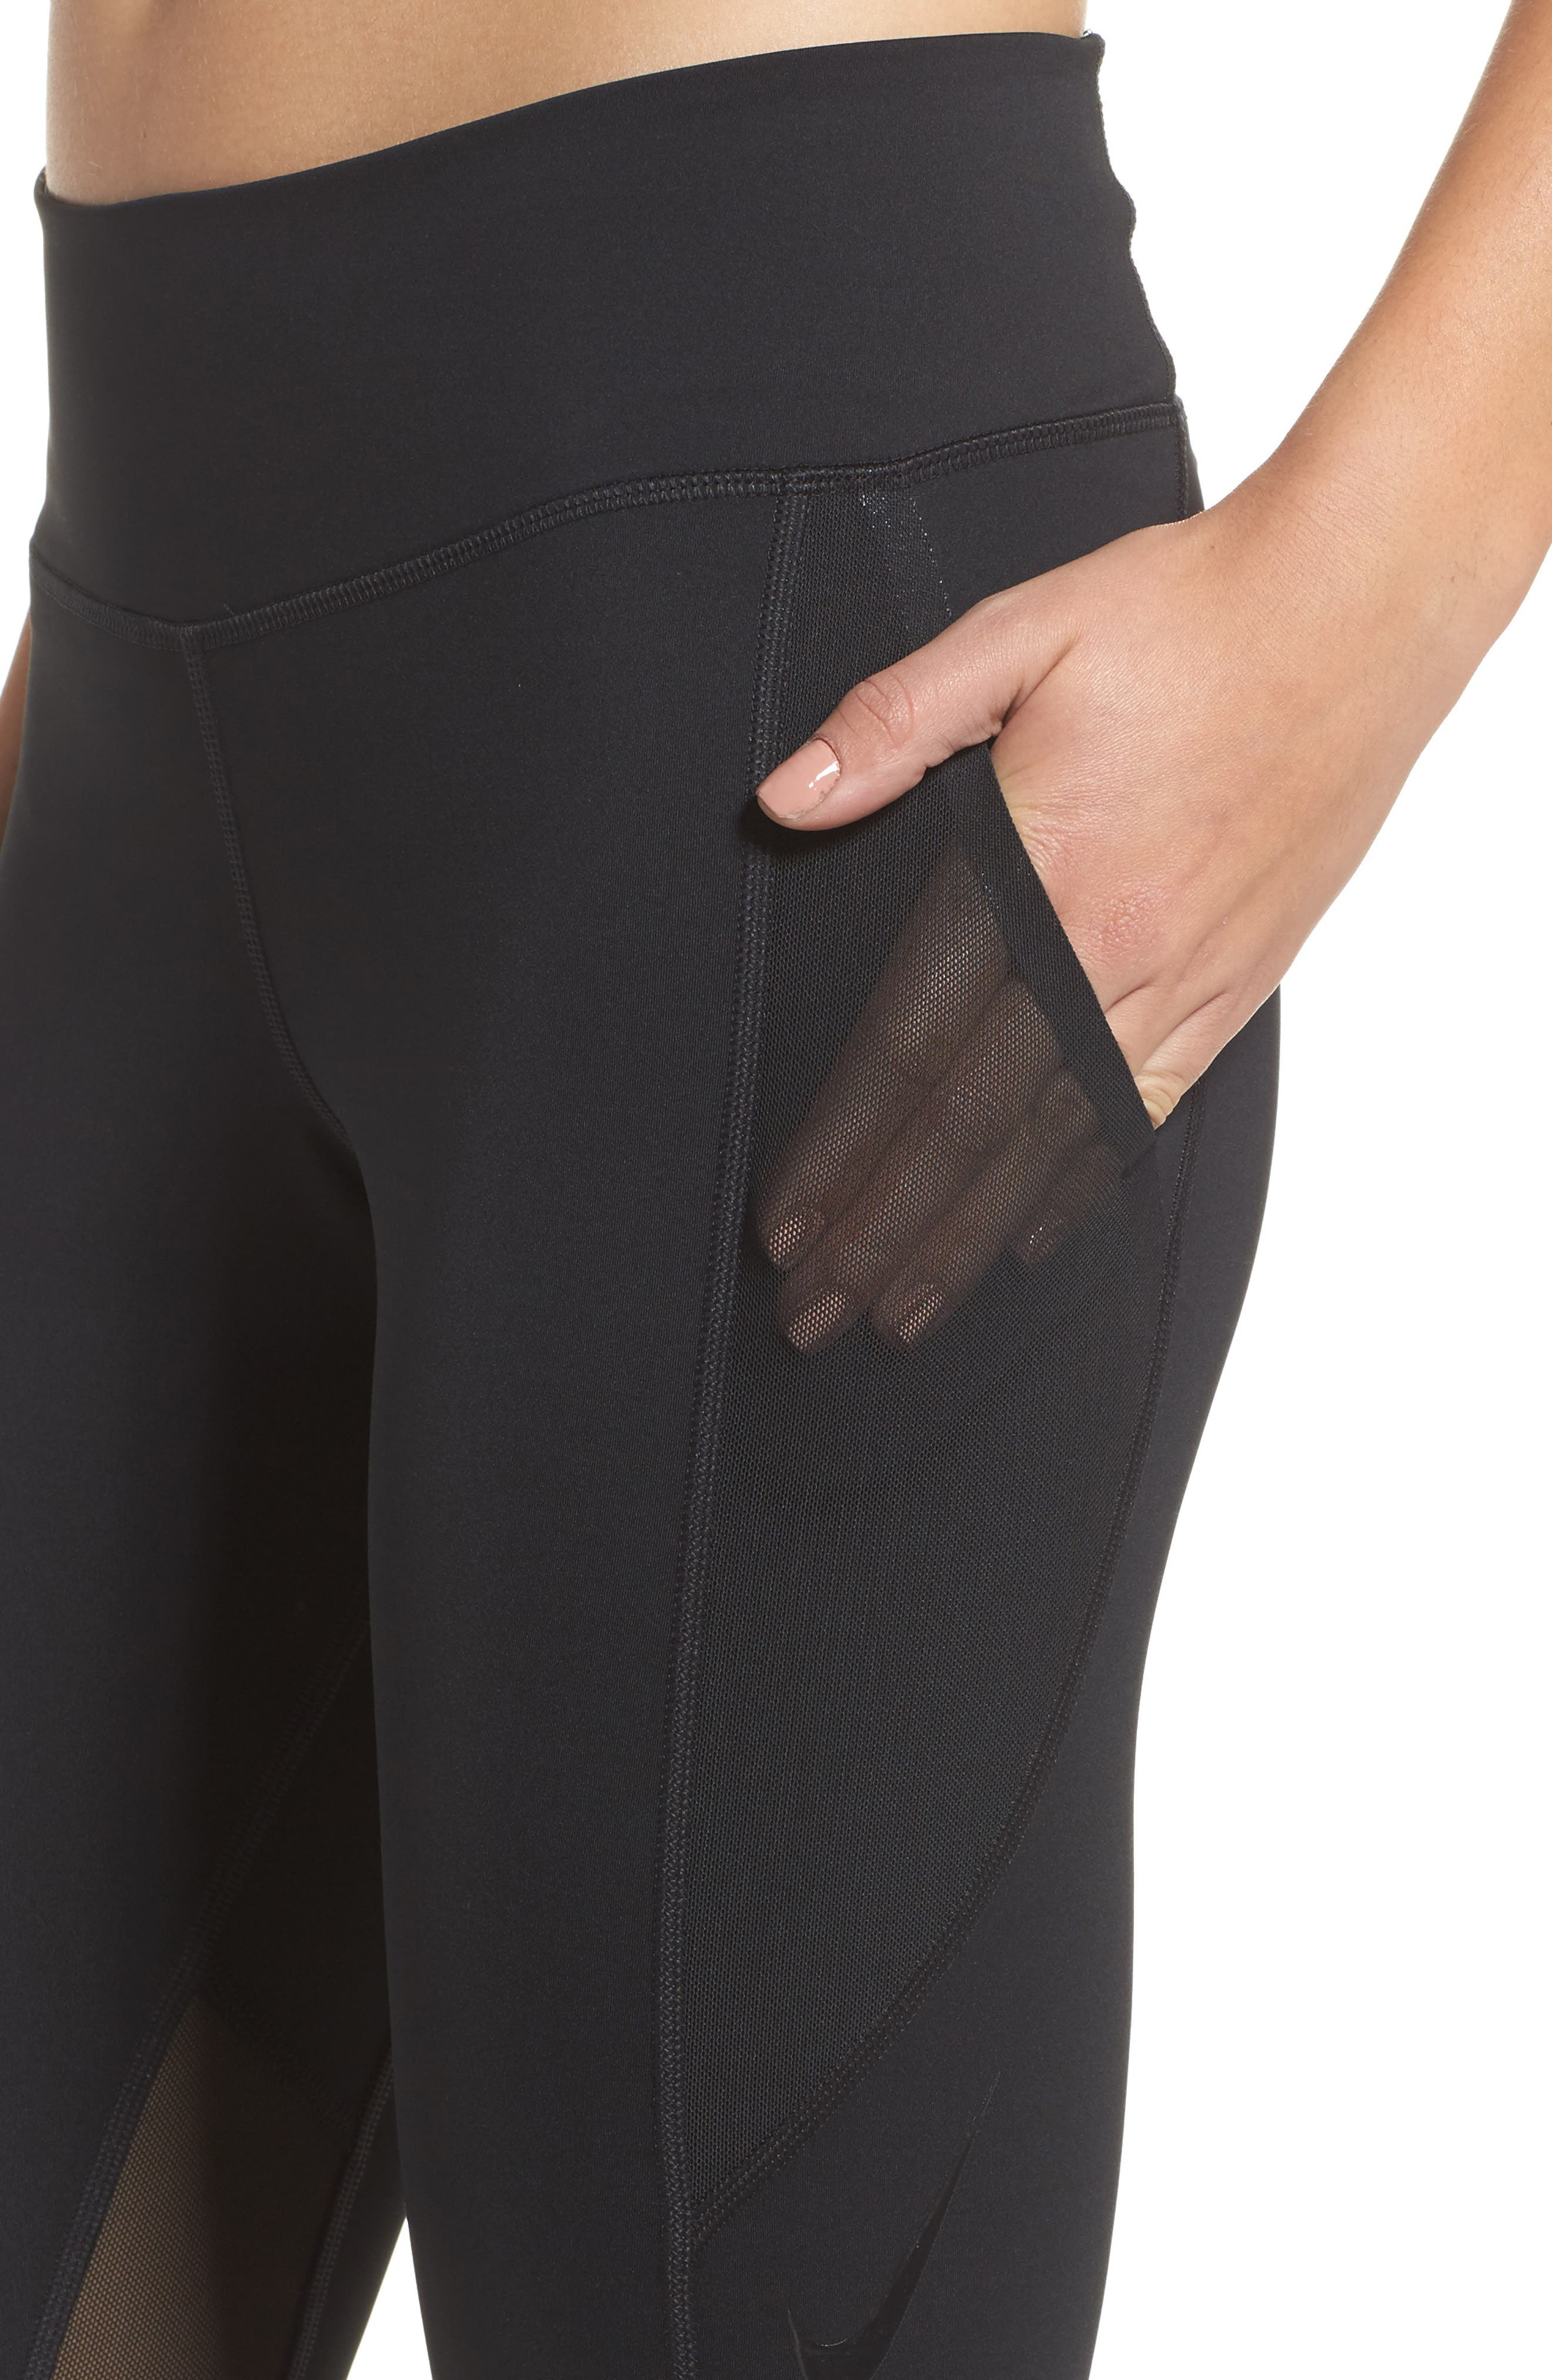 Power Pocket Lux Ankle Tights,                             Alternate thumbnail 4, color,                             BLACK/ BLACK/ CLEAR